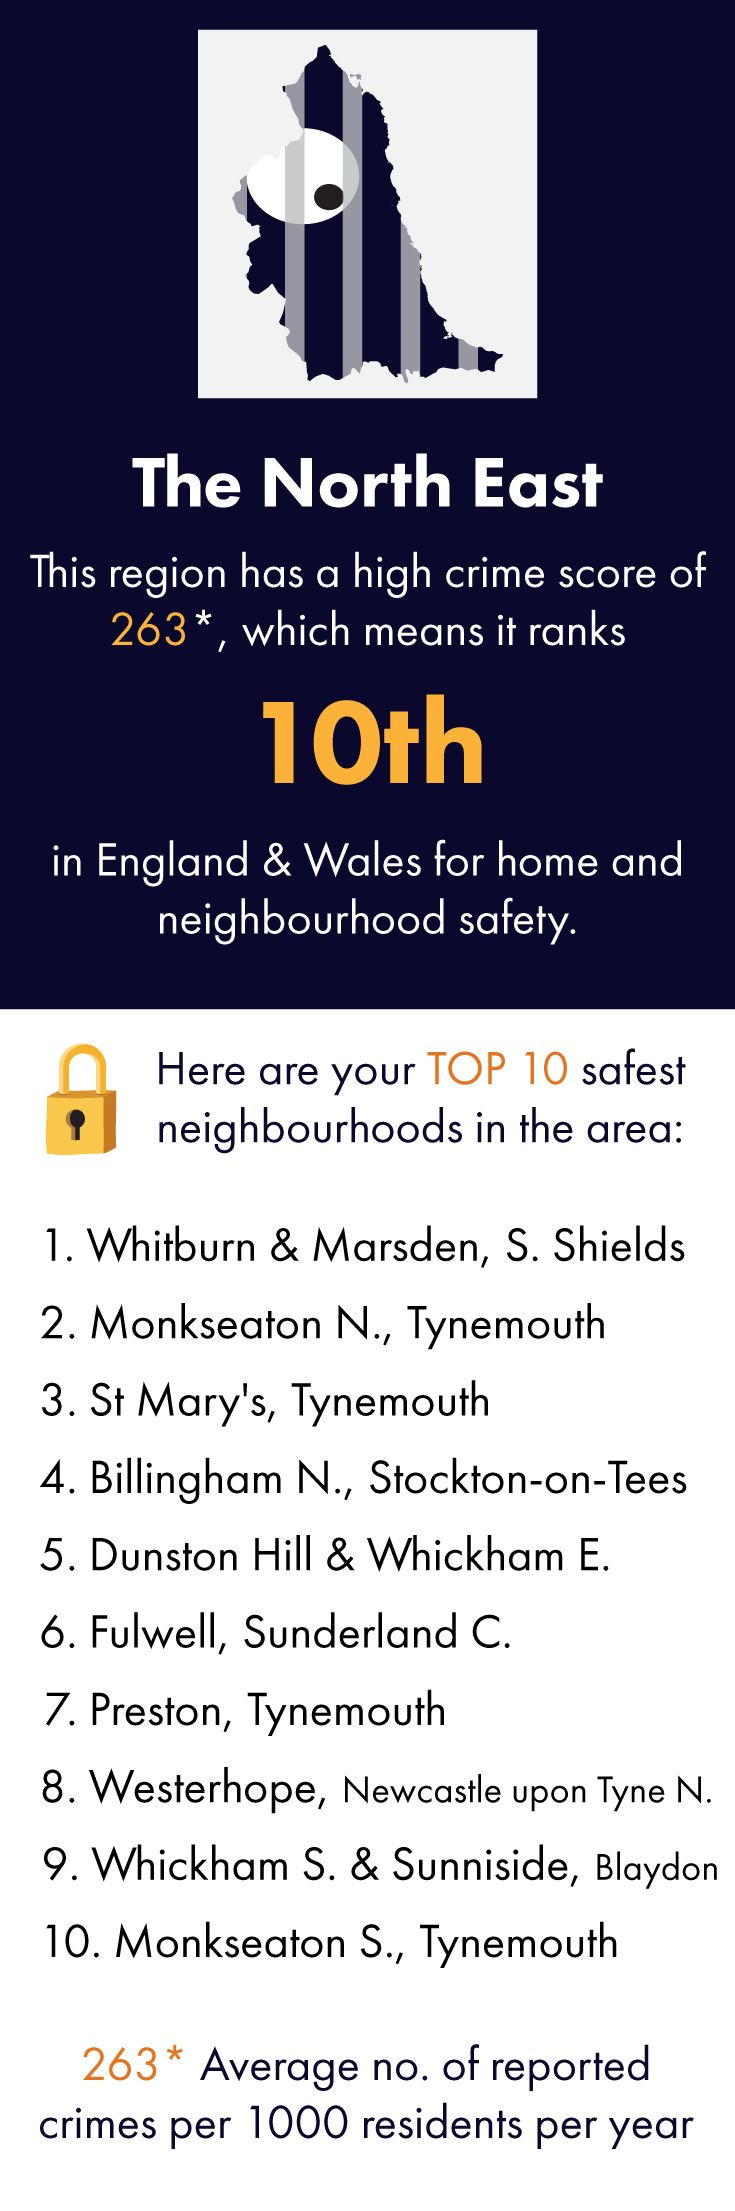 The LLL team brings you their top safe havens in North East England. Click through to see a more detailed crime breakdown, as well as other cool info. You can also search for YOUR village, town or city on our site. Featuring: Whitburn and Marsden, South Shields, Monkseaton, Tynemouth, St Mary's, Billingham, Stockton-on-Tees, Dunston Hill, Whickham, Fulwell, Sunderland, Preston, Westerhope, Newcastle upon Tyne, Sunniside, and Blaydon.